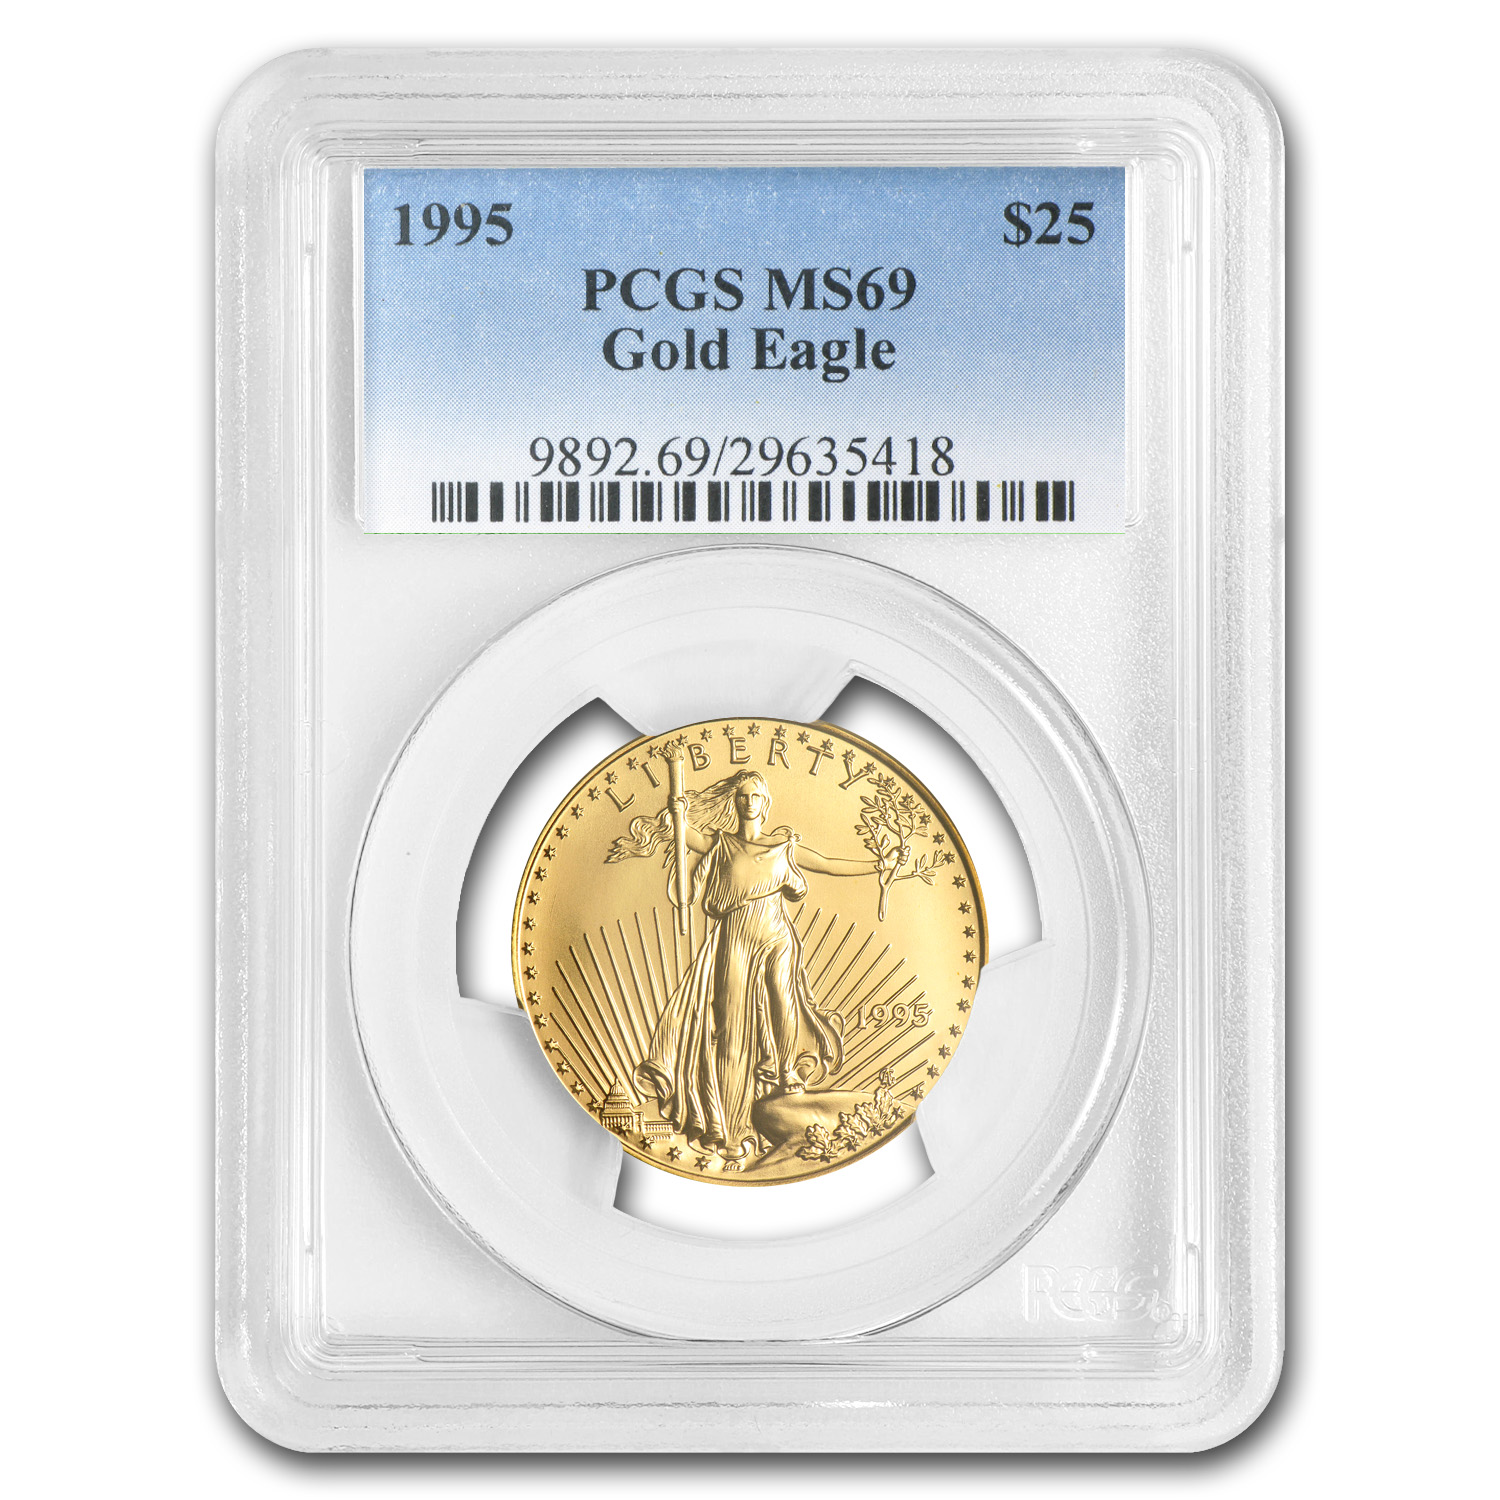 1995 1/2 oz Gold American Eagle MS-69 PCGS